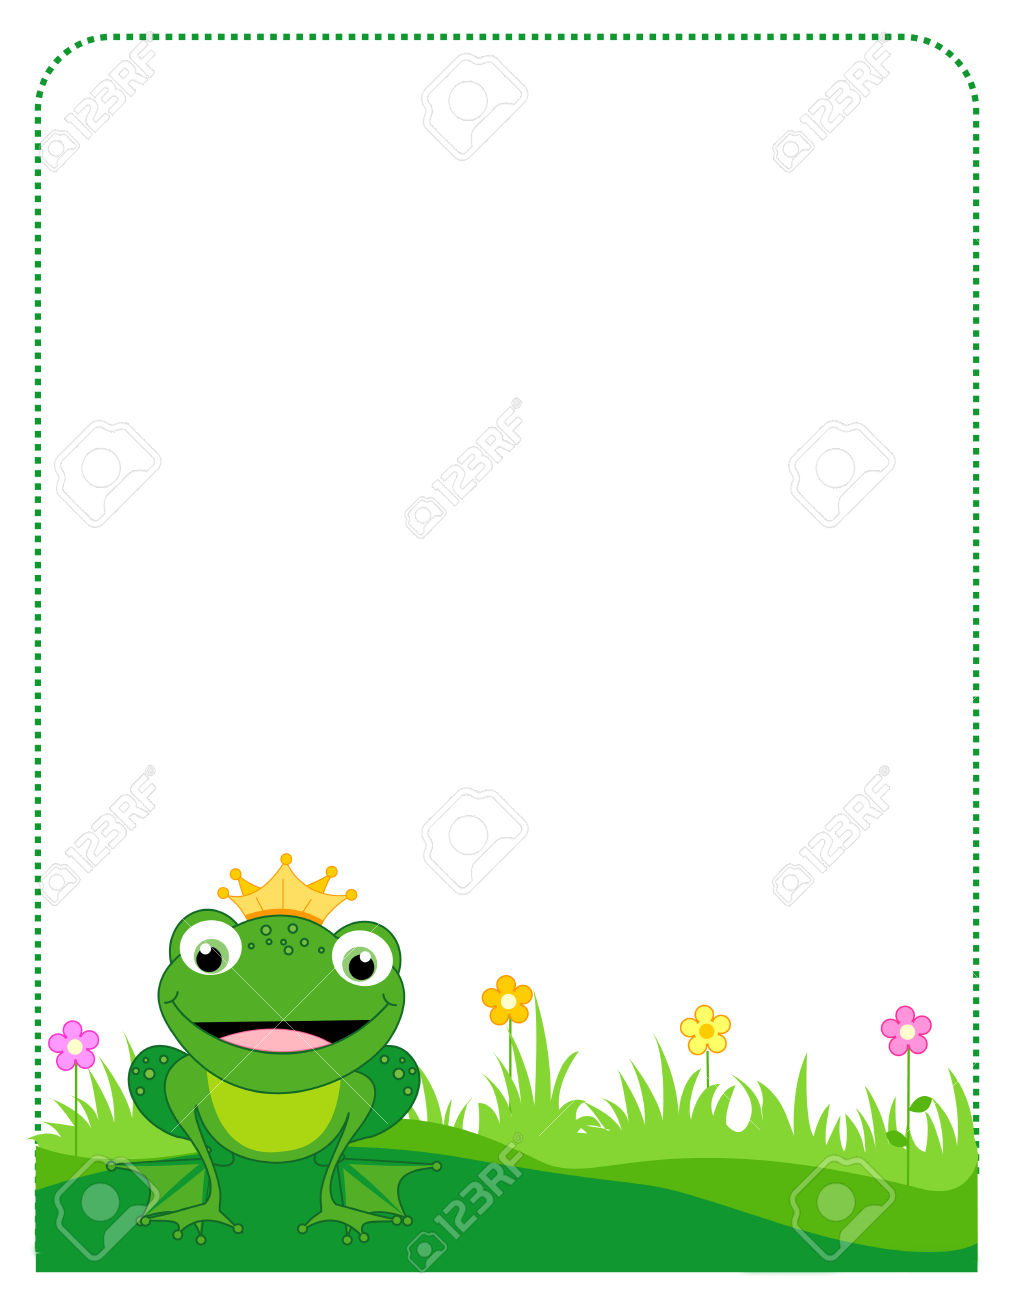 Cute Frog With A Golden Crown Border / Frame On White Background.